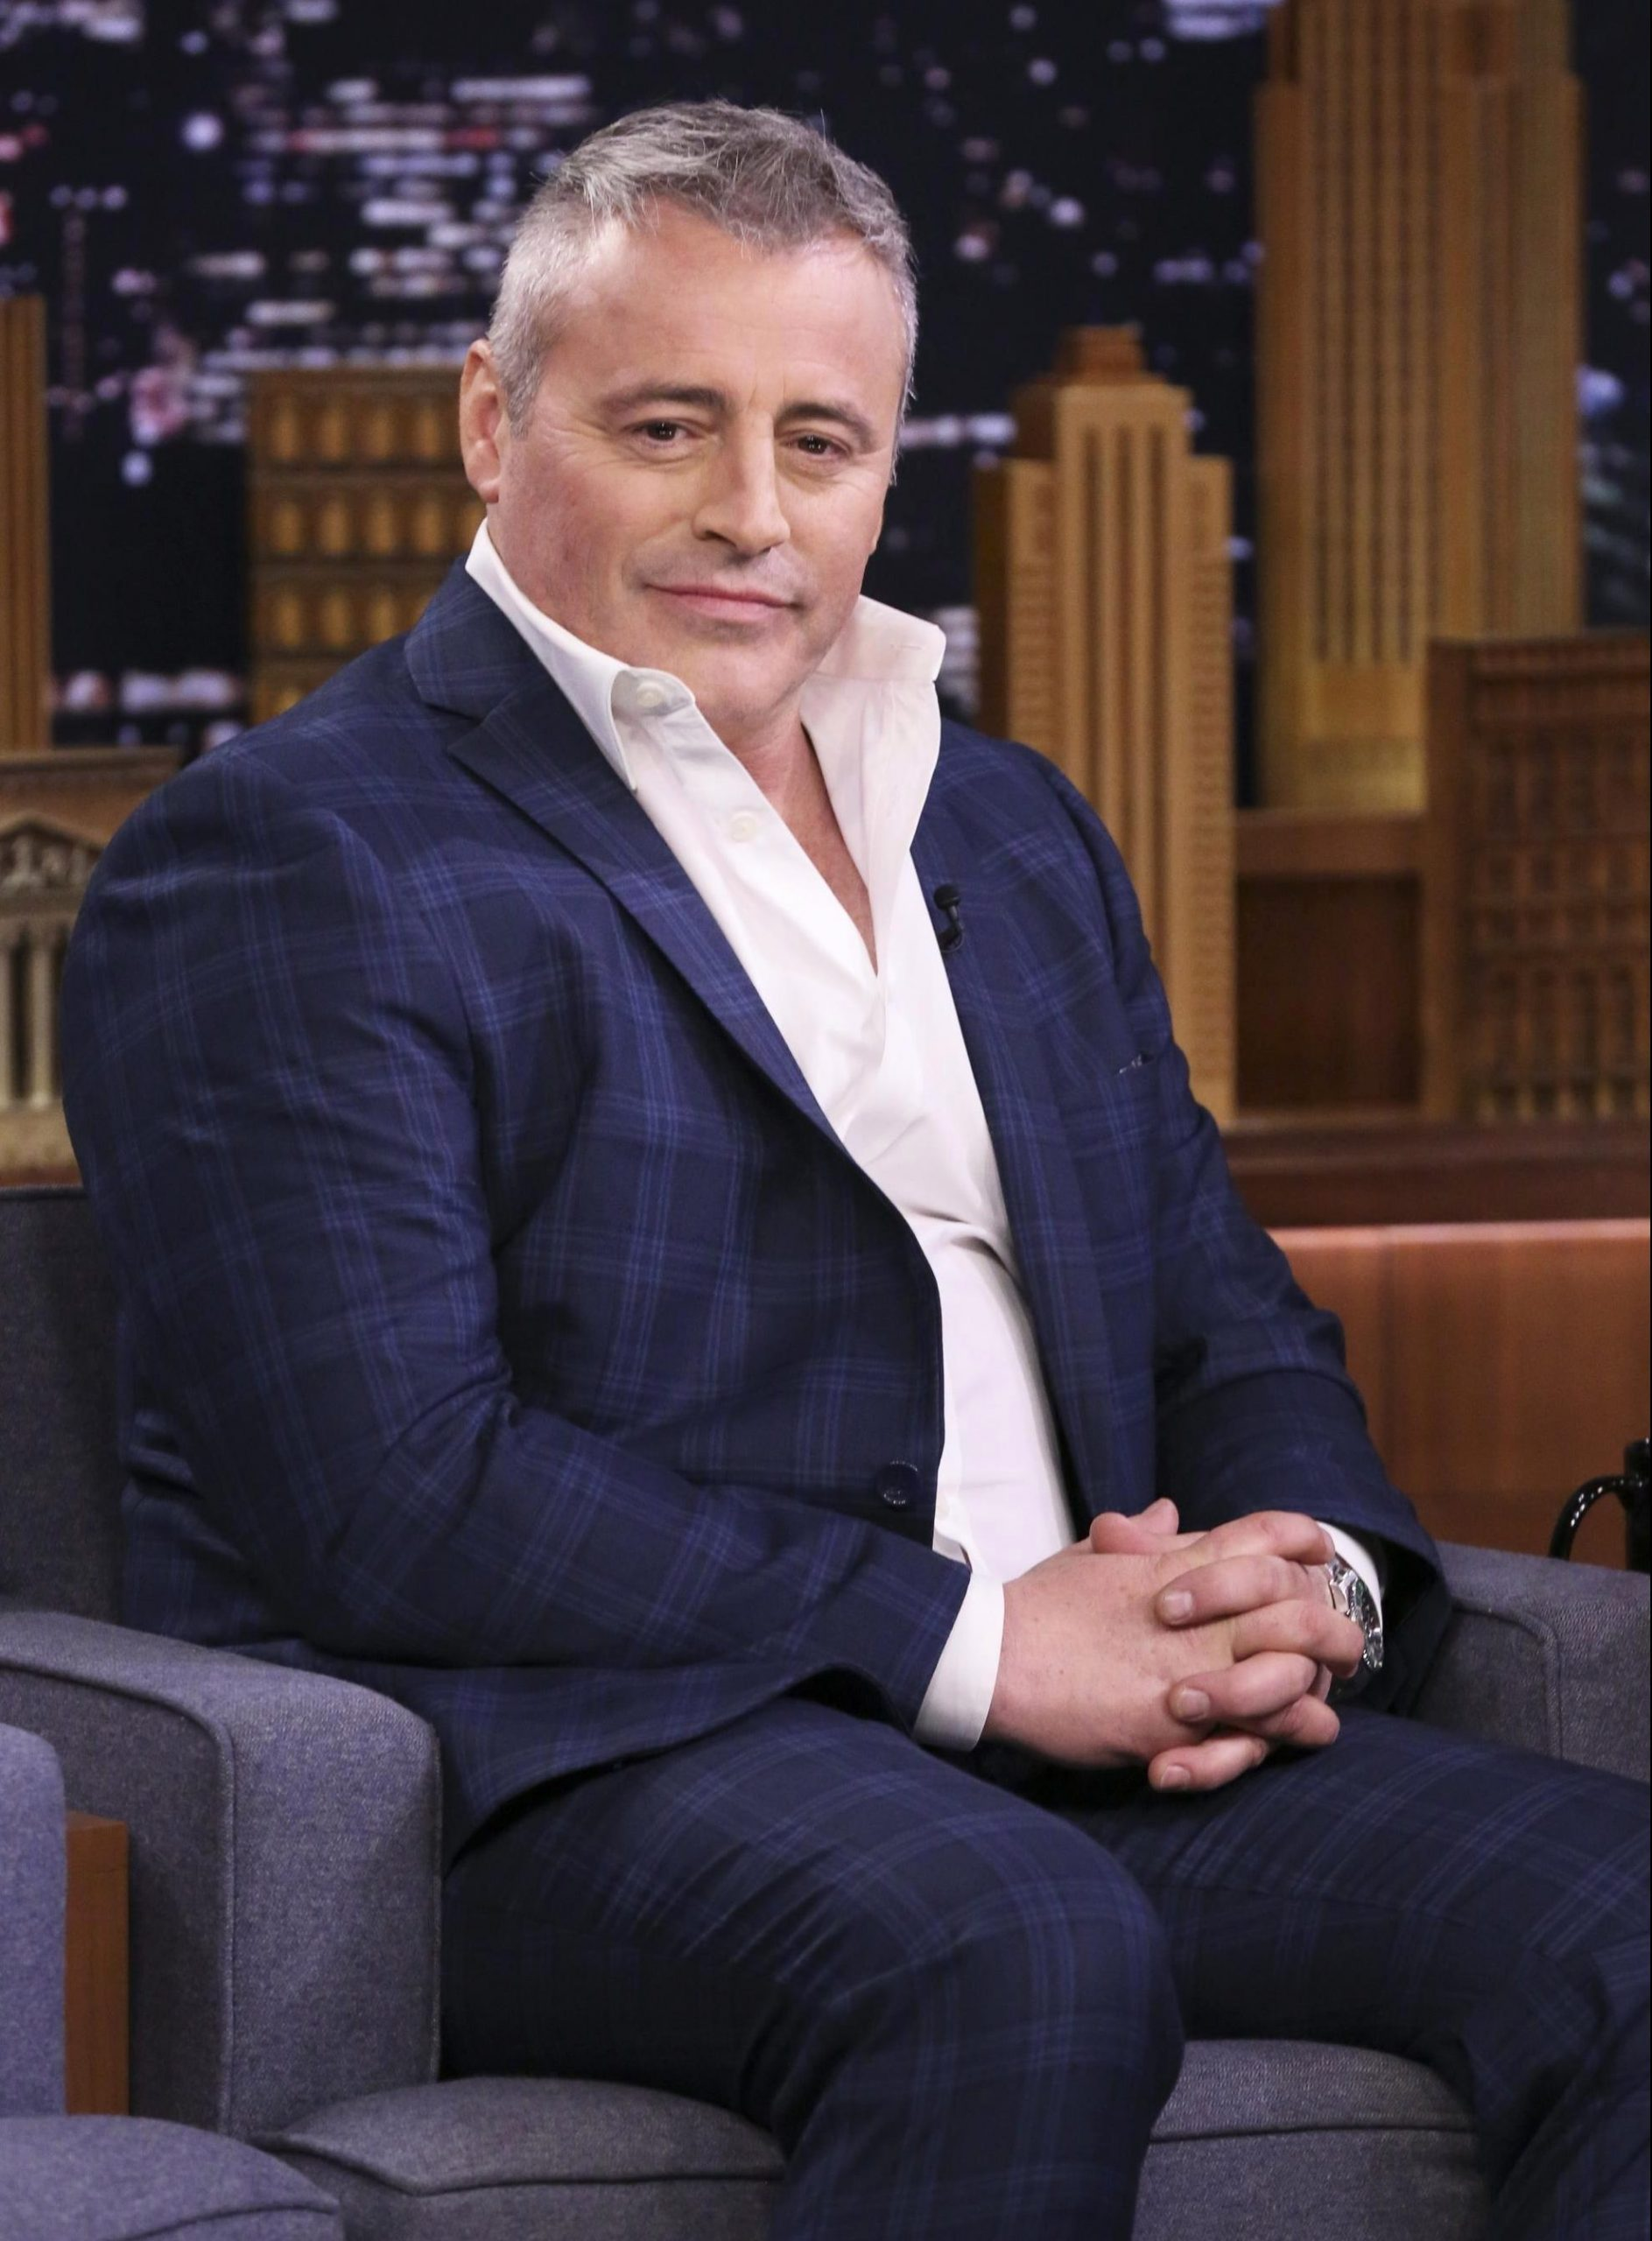 Friends Cast In Real Life 2020